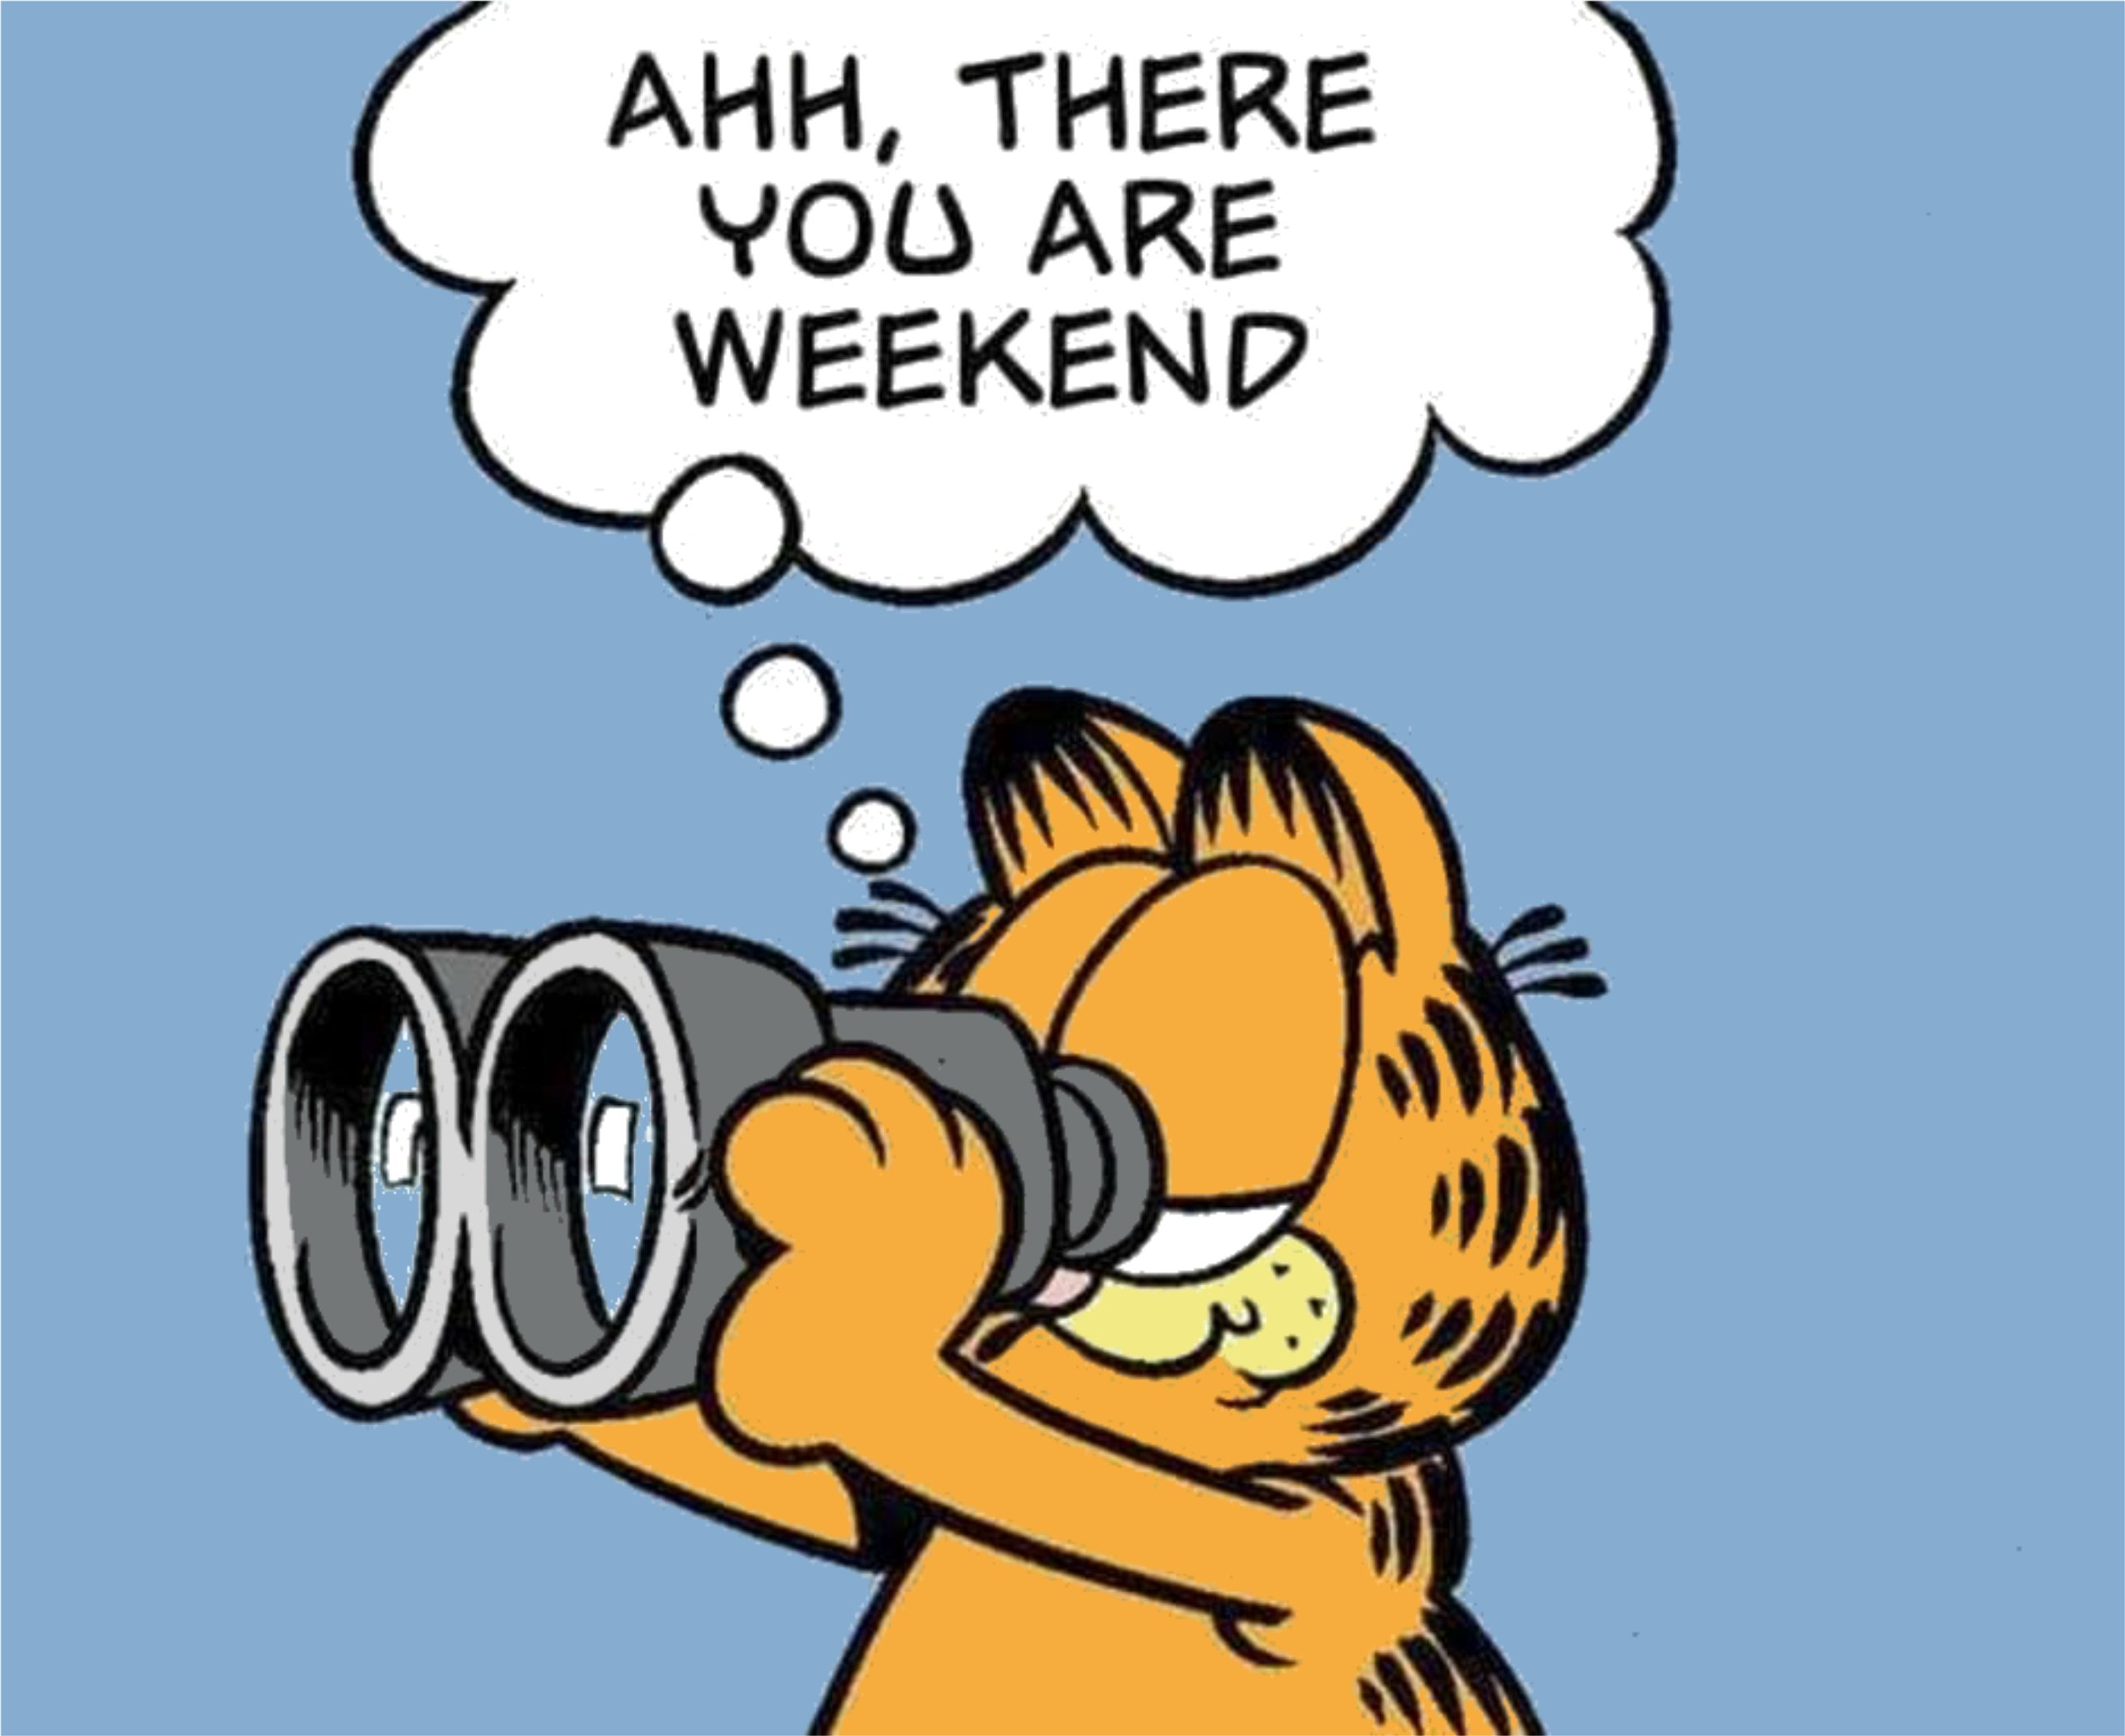 Ahh, there you are weekend - Weekend Happenings with Garfield the cat looking through binoculars.